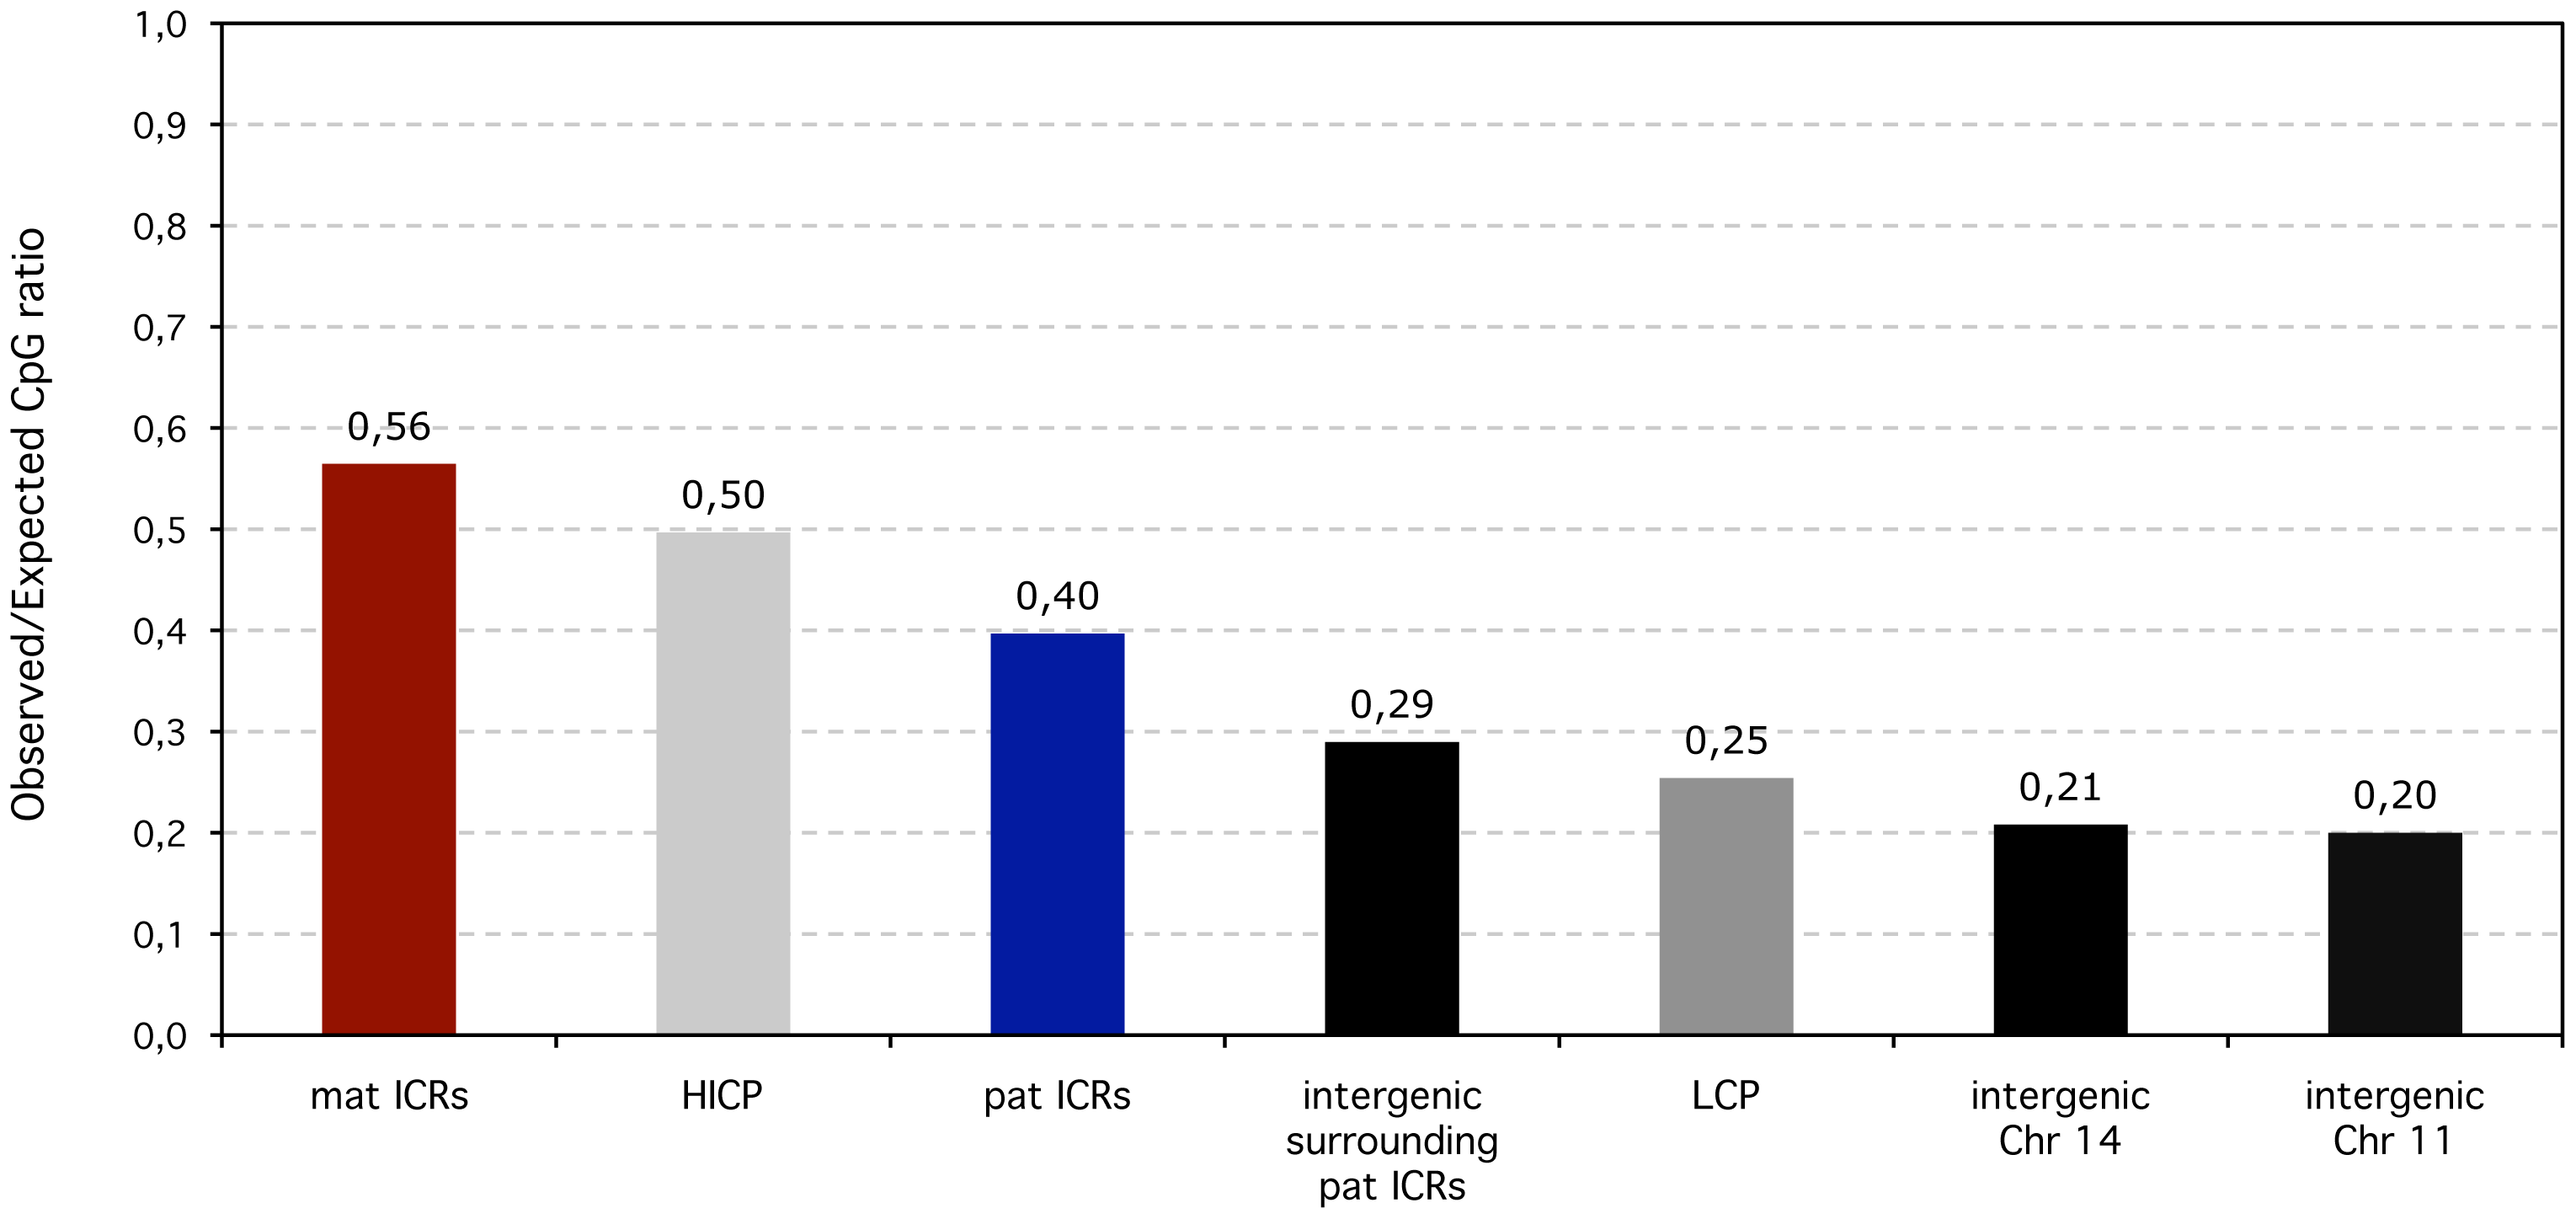 Observed over expected CpG ratios of ICRS compared to non-imprinted promoters and intergenic regions in the human lineage.